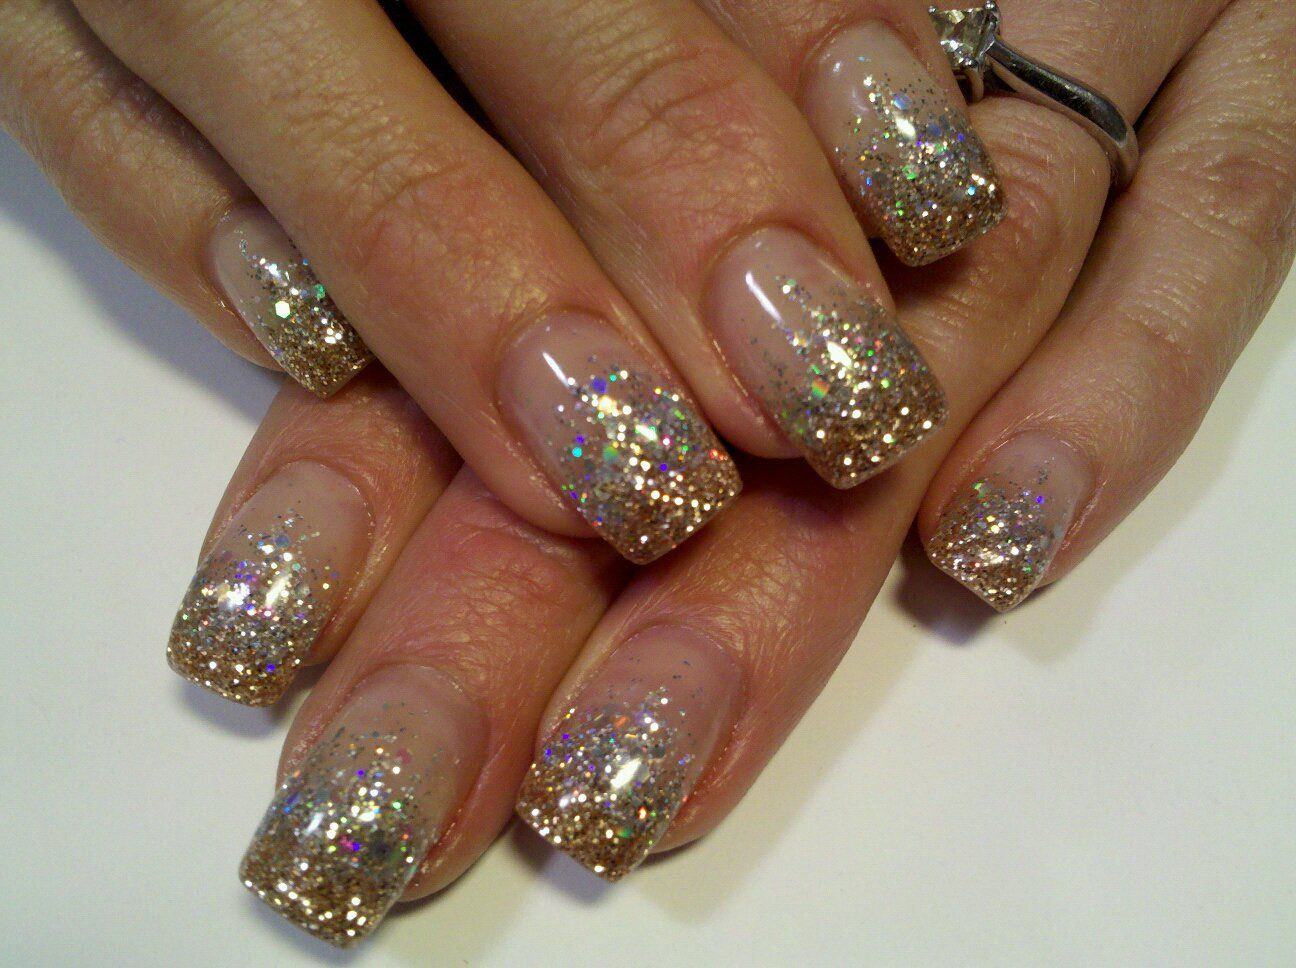 Super Sparkle Silver and Gold Glitter Gel Nails   My Work ...